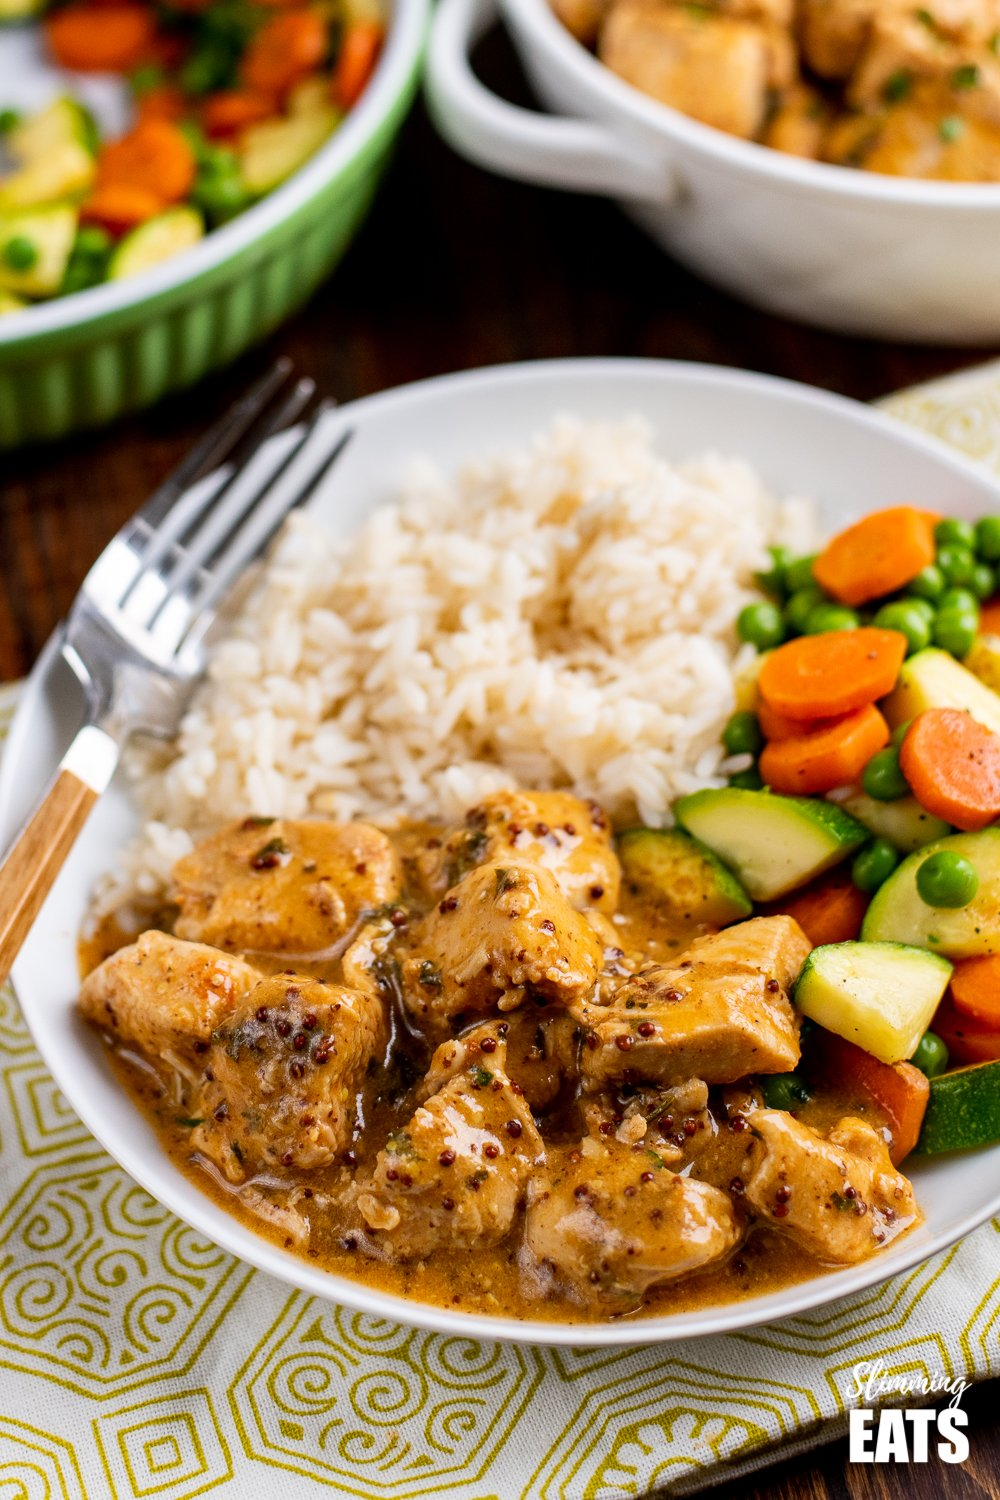 instant pot chicken in white bowl with rice and vegetables on patterned placemat